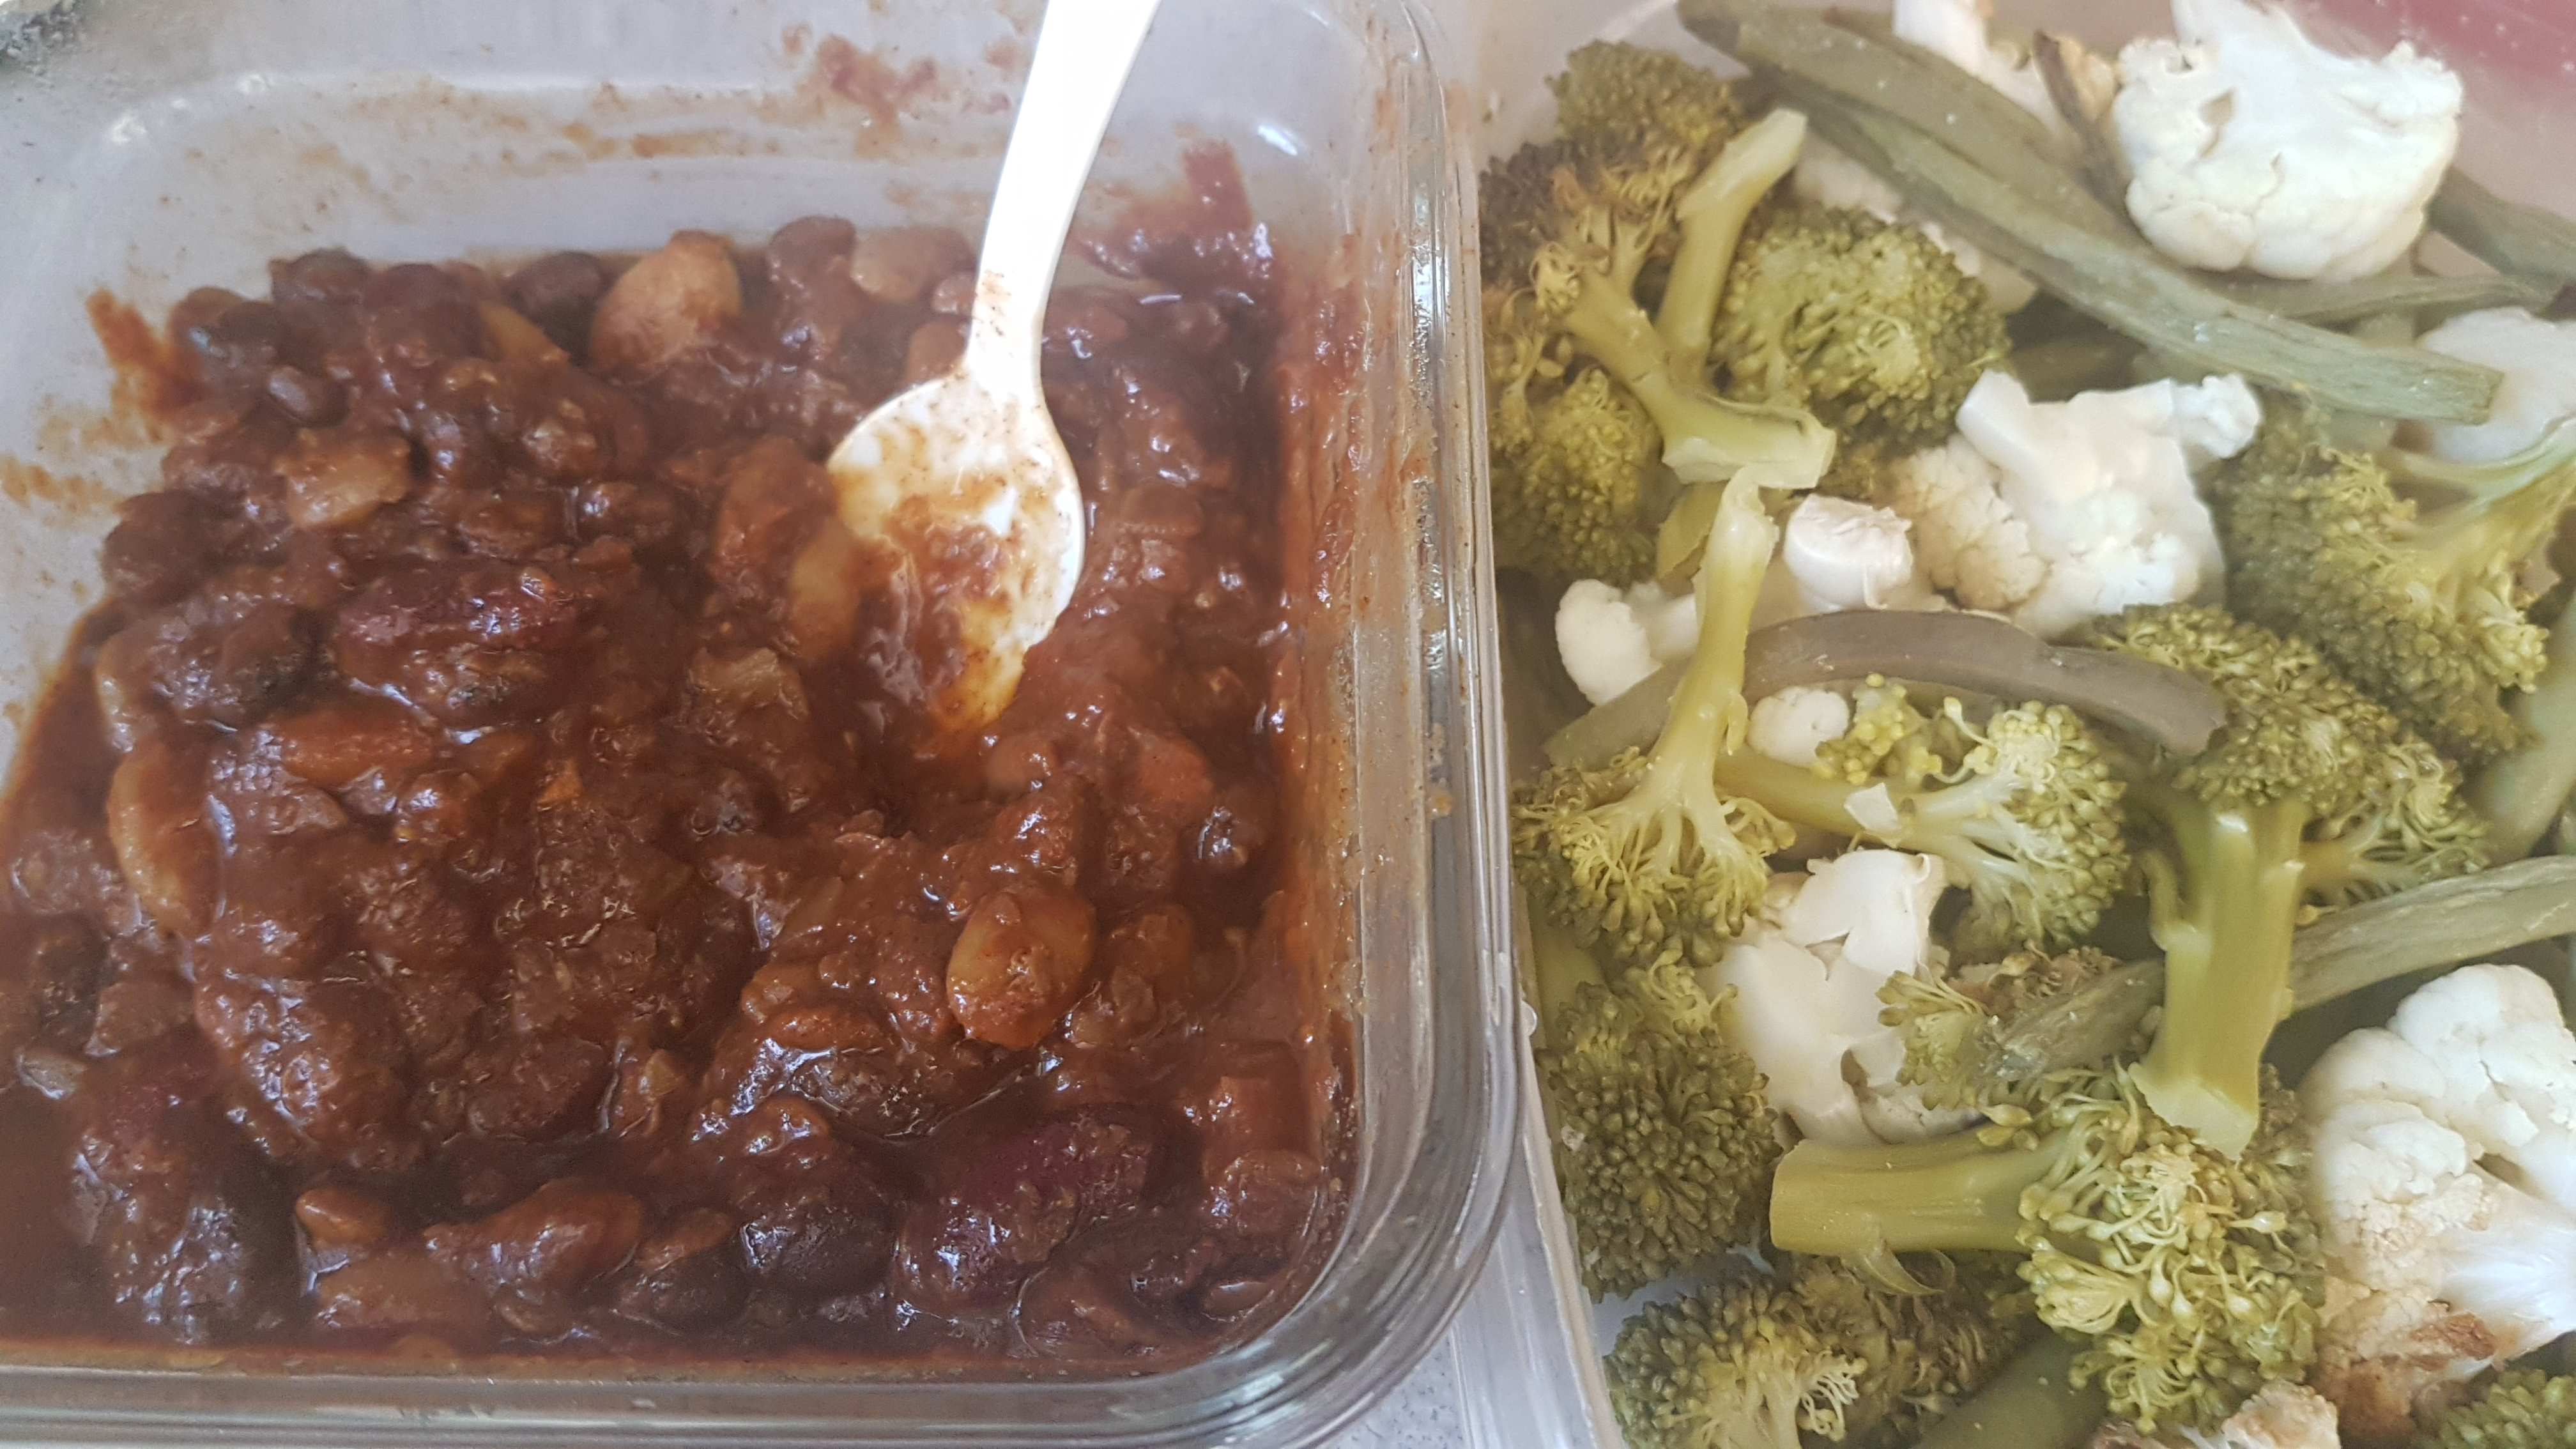 vegetarian chili with steamed vegetables